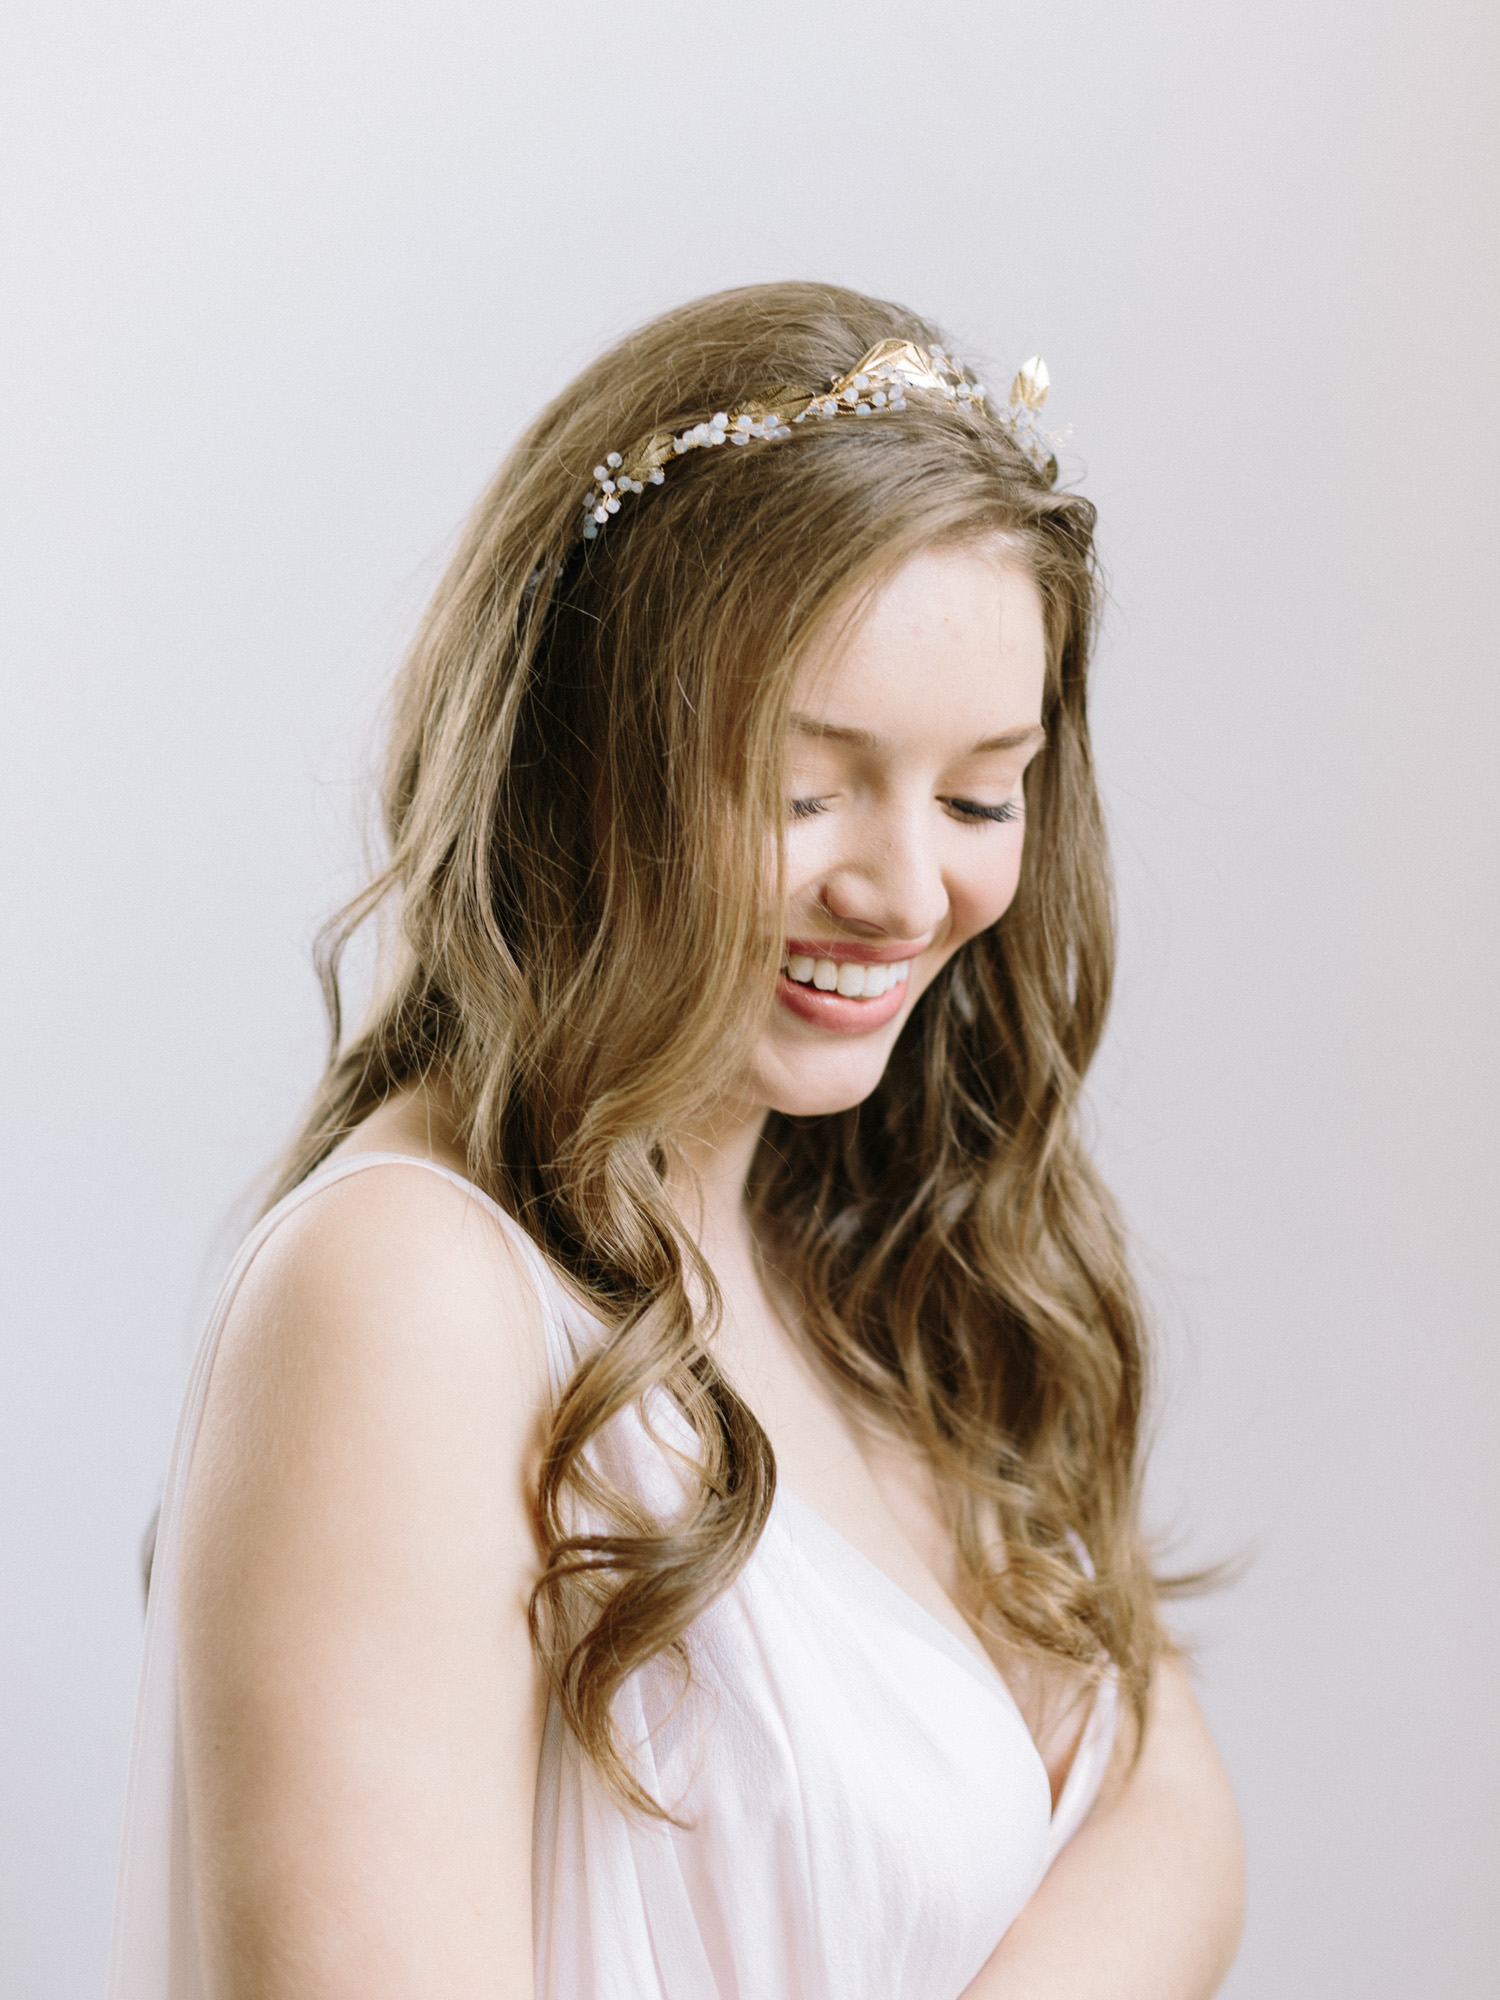 A bride in a gold vine headpiece with her hair down and curled laughs while looking down